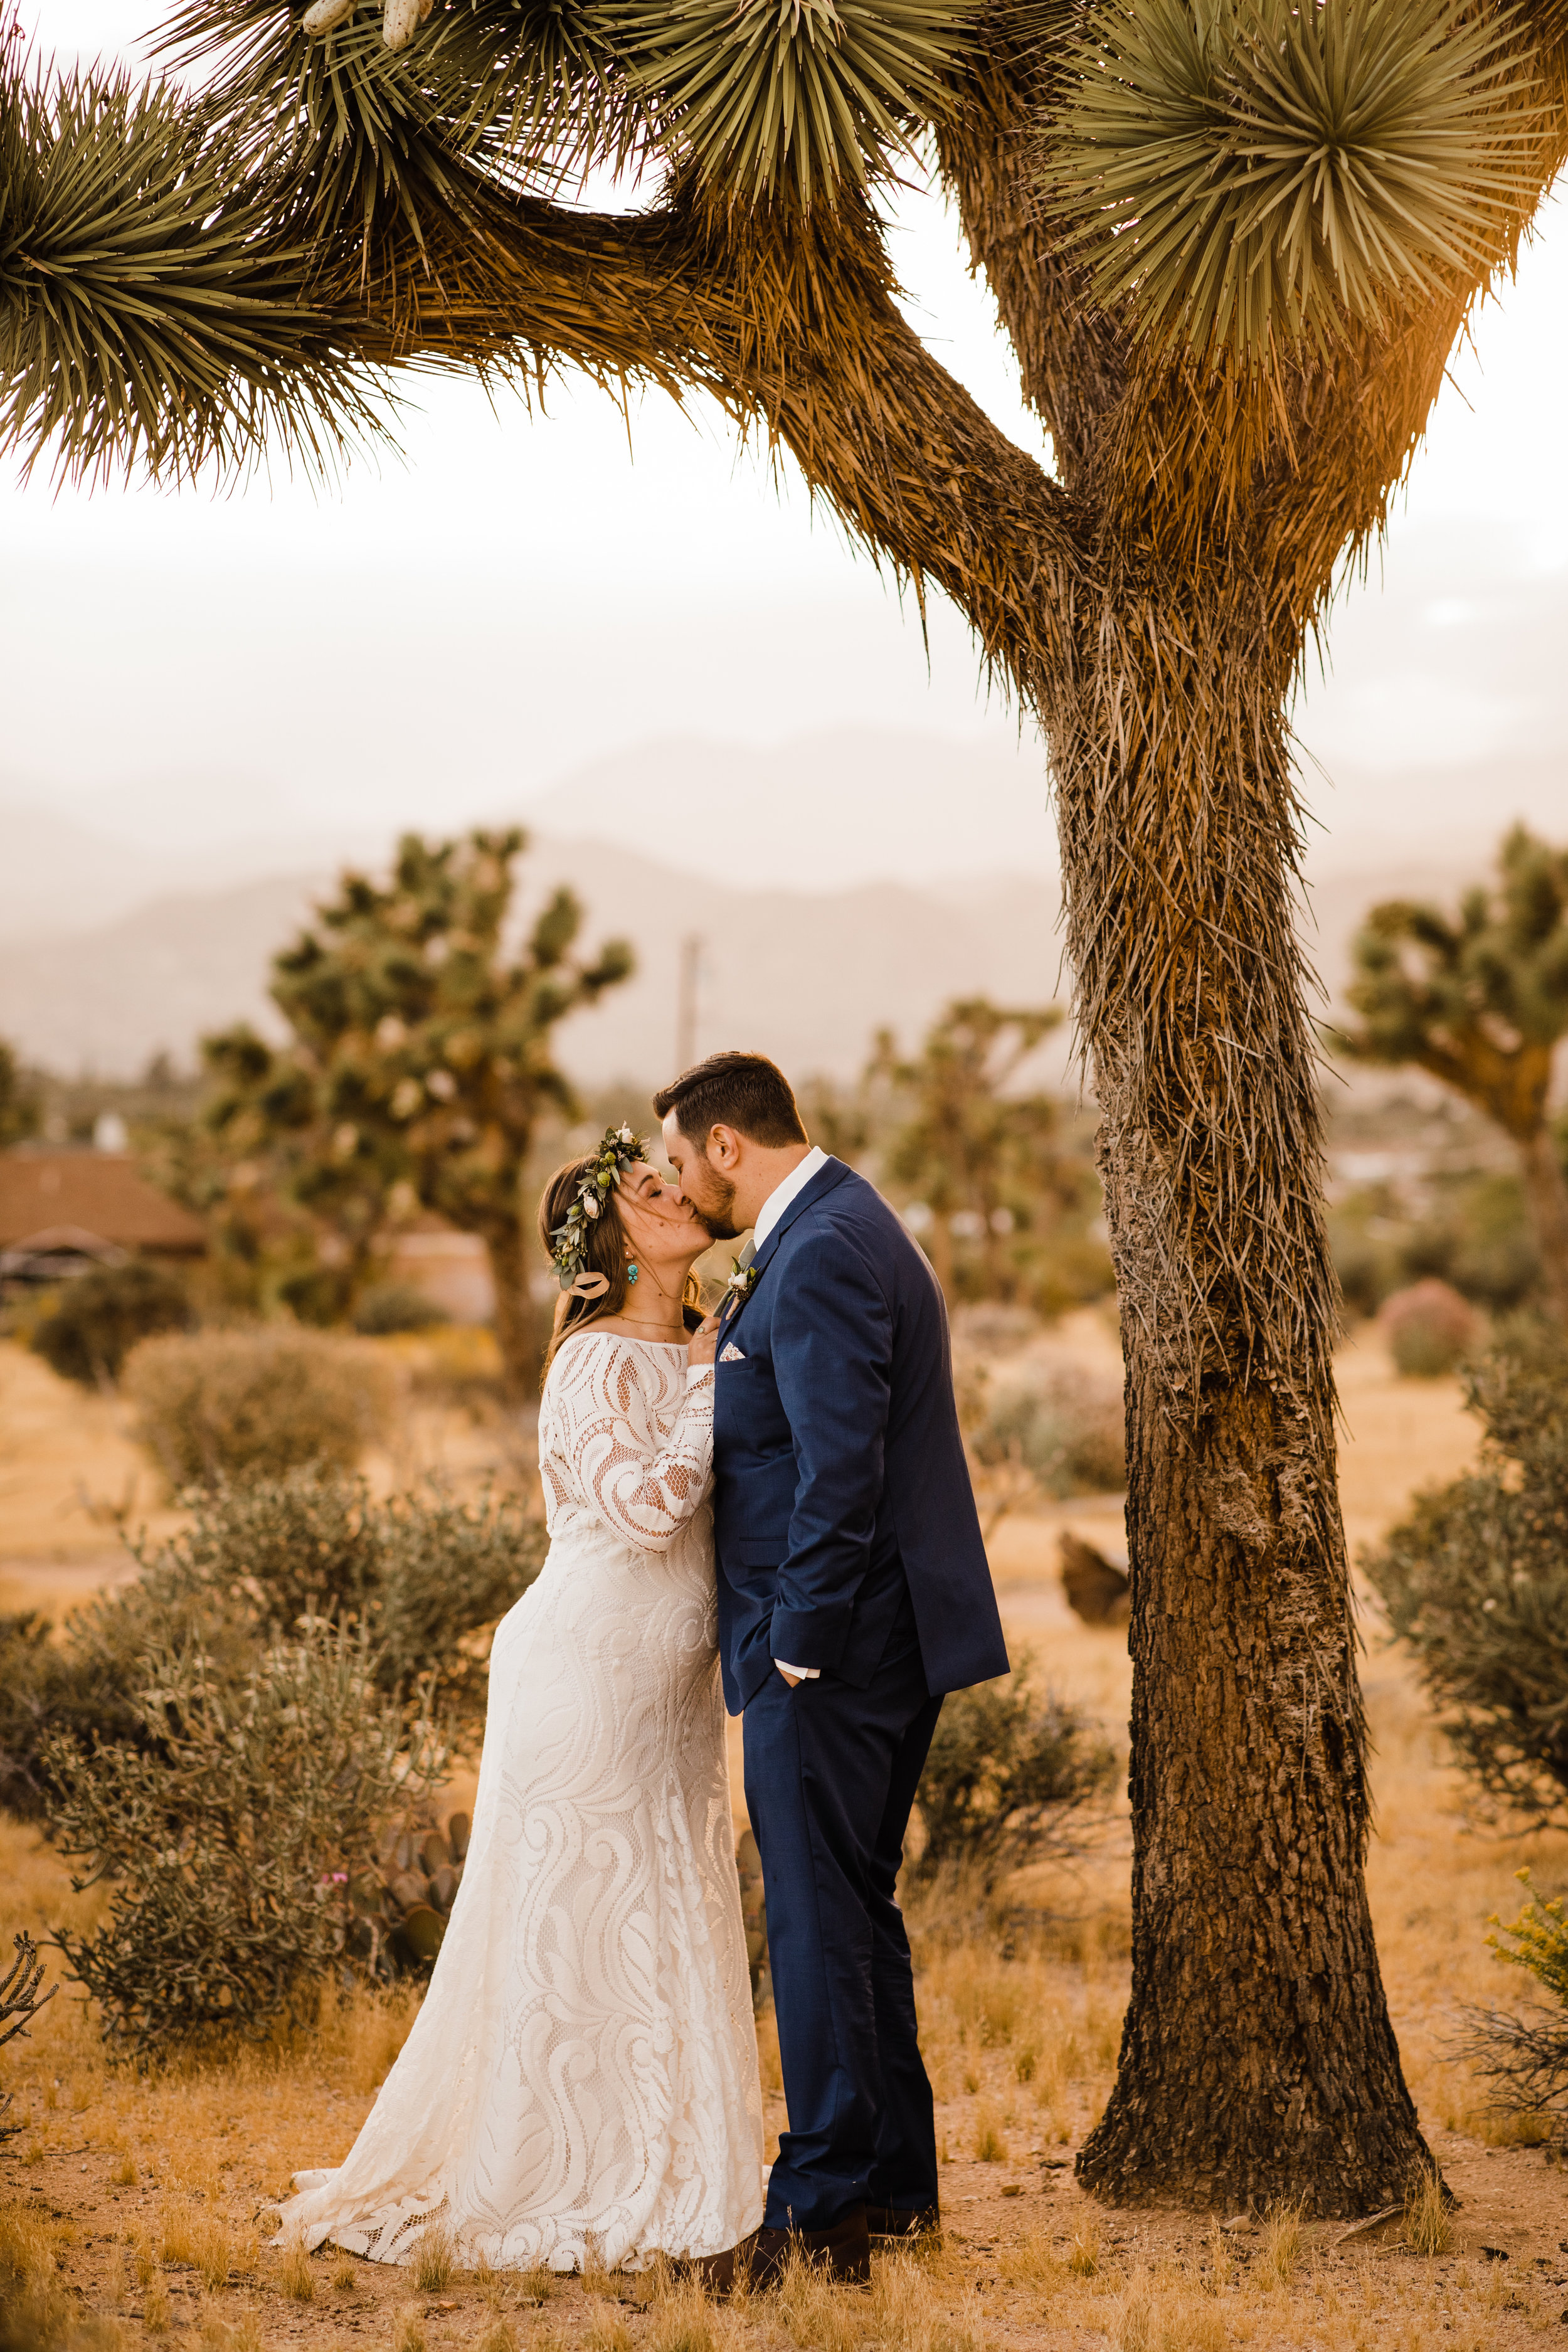 Golden hour portraits of bride and groom at tumbleweed sanctuary